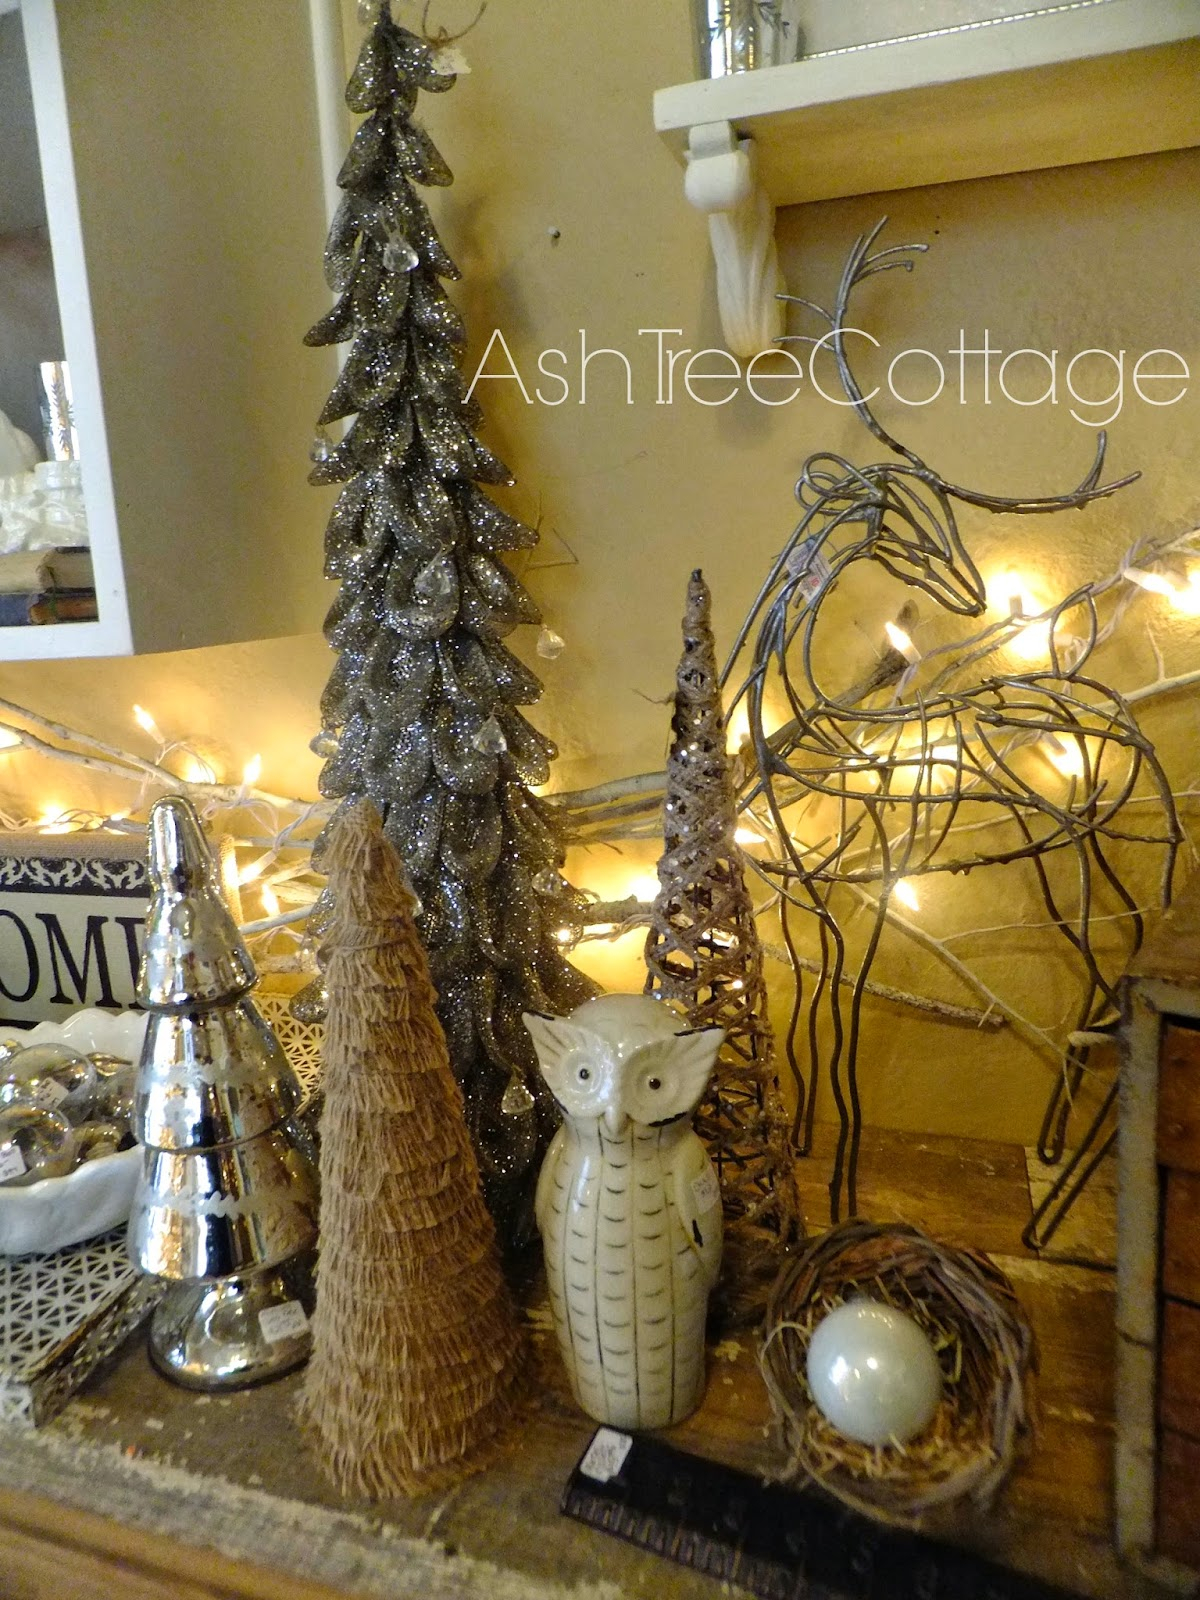 I thought I would share some Texas Hill Country Decorating ideas & Ash Tree Cottage: Hill Country Christmas Decorating Ideas